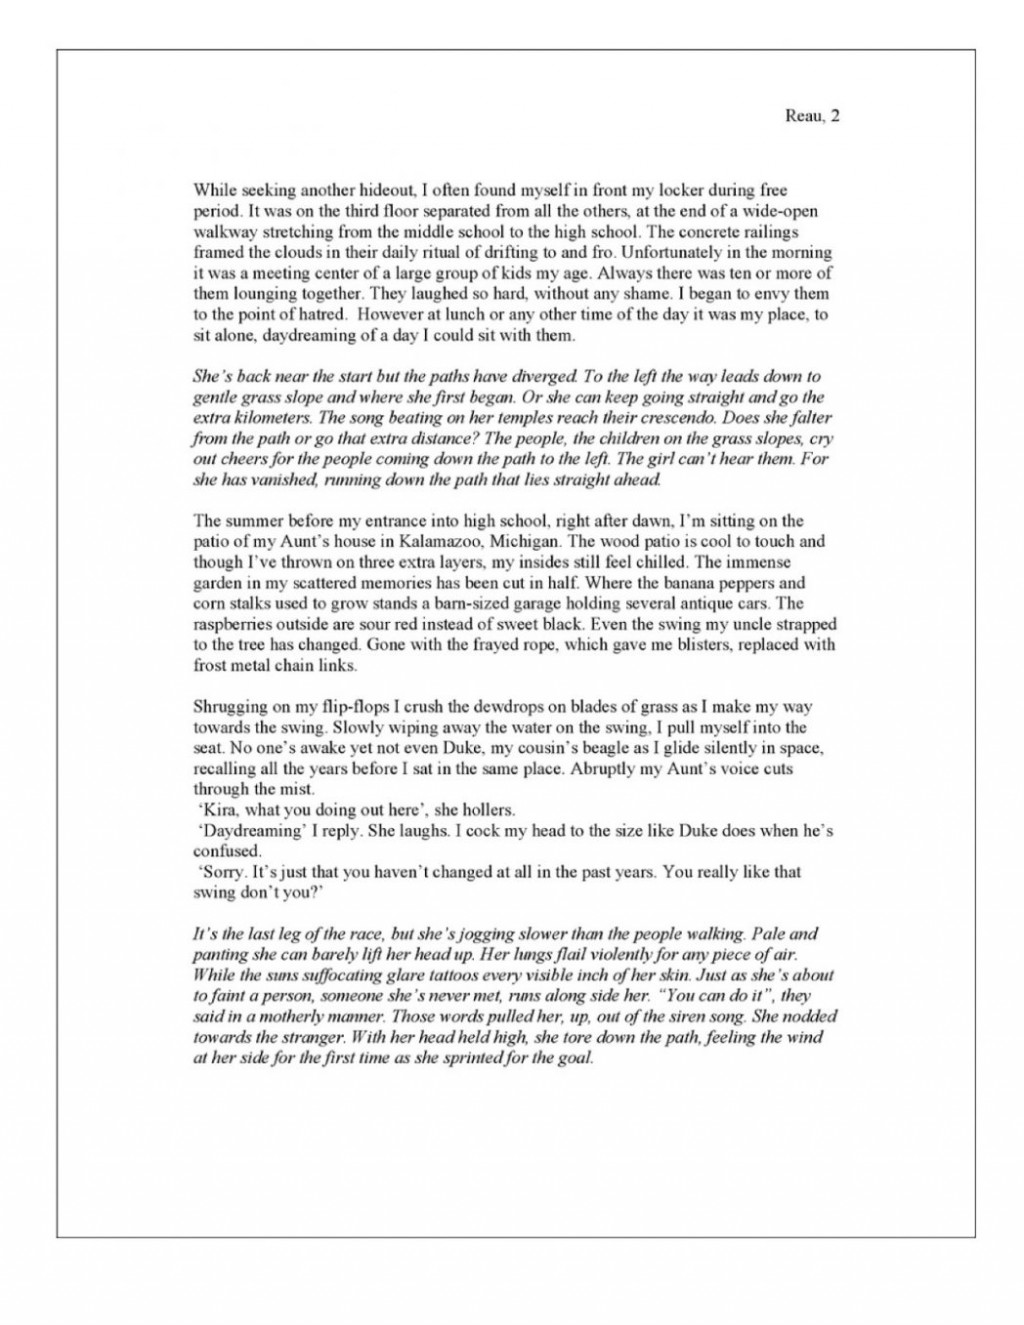 018 Narration Essay Define Narrative Definition Of The Life A Misant How To Write My Help Me 1048x1357 Fascinating Writing Personal Narrative/descriptive Large